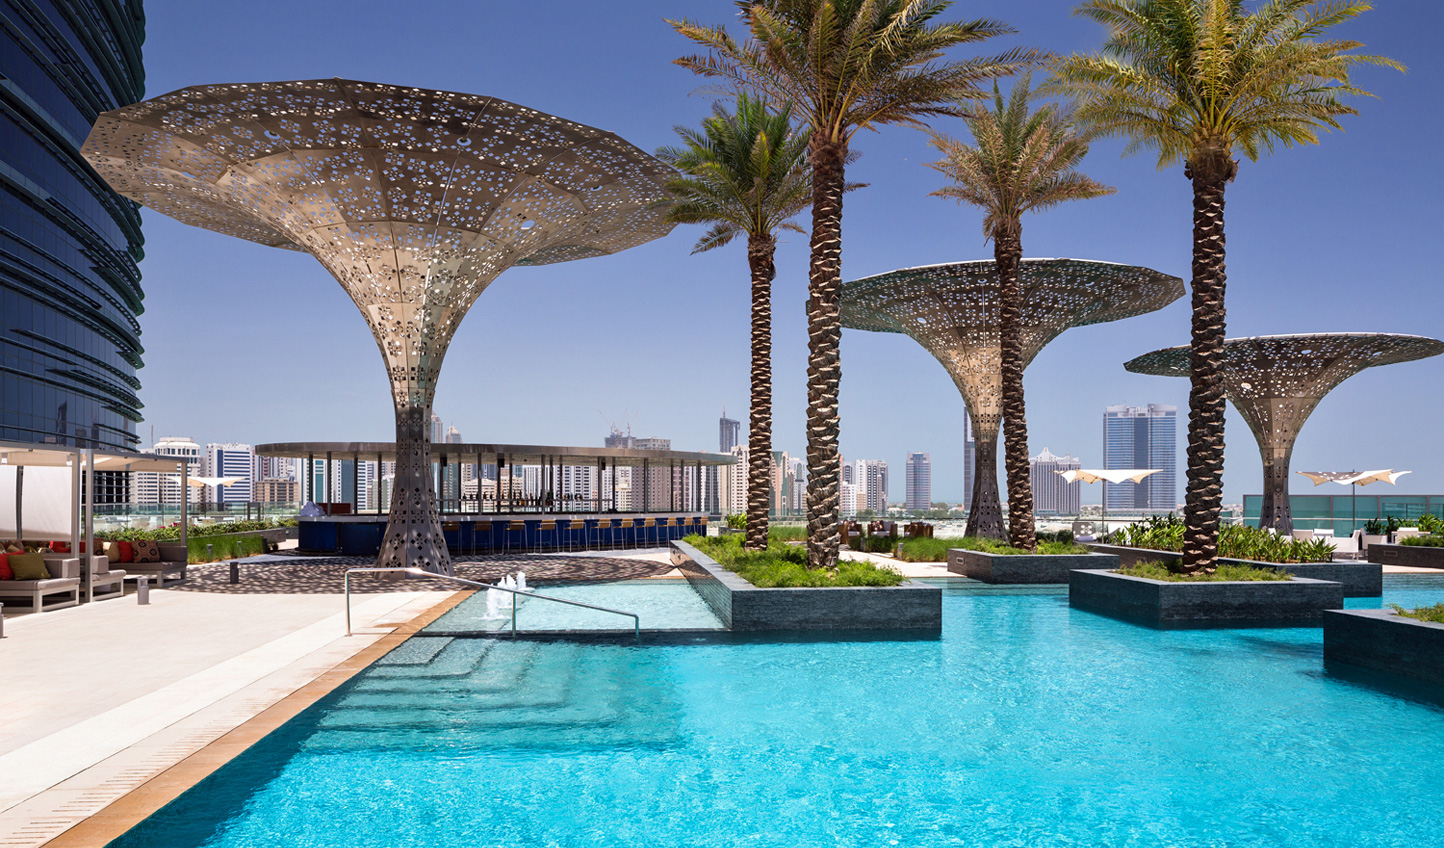 The 25 metre outdoor pool will help take the heat off Abu Dhabi days